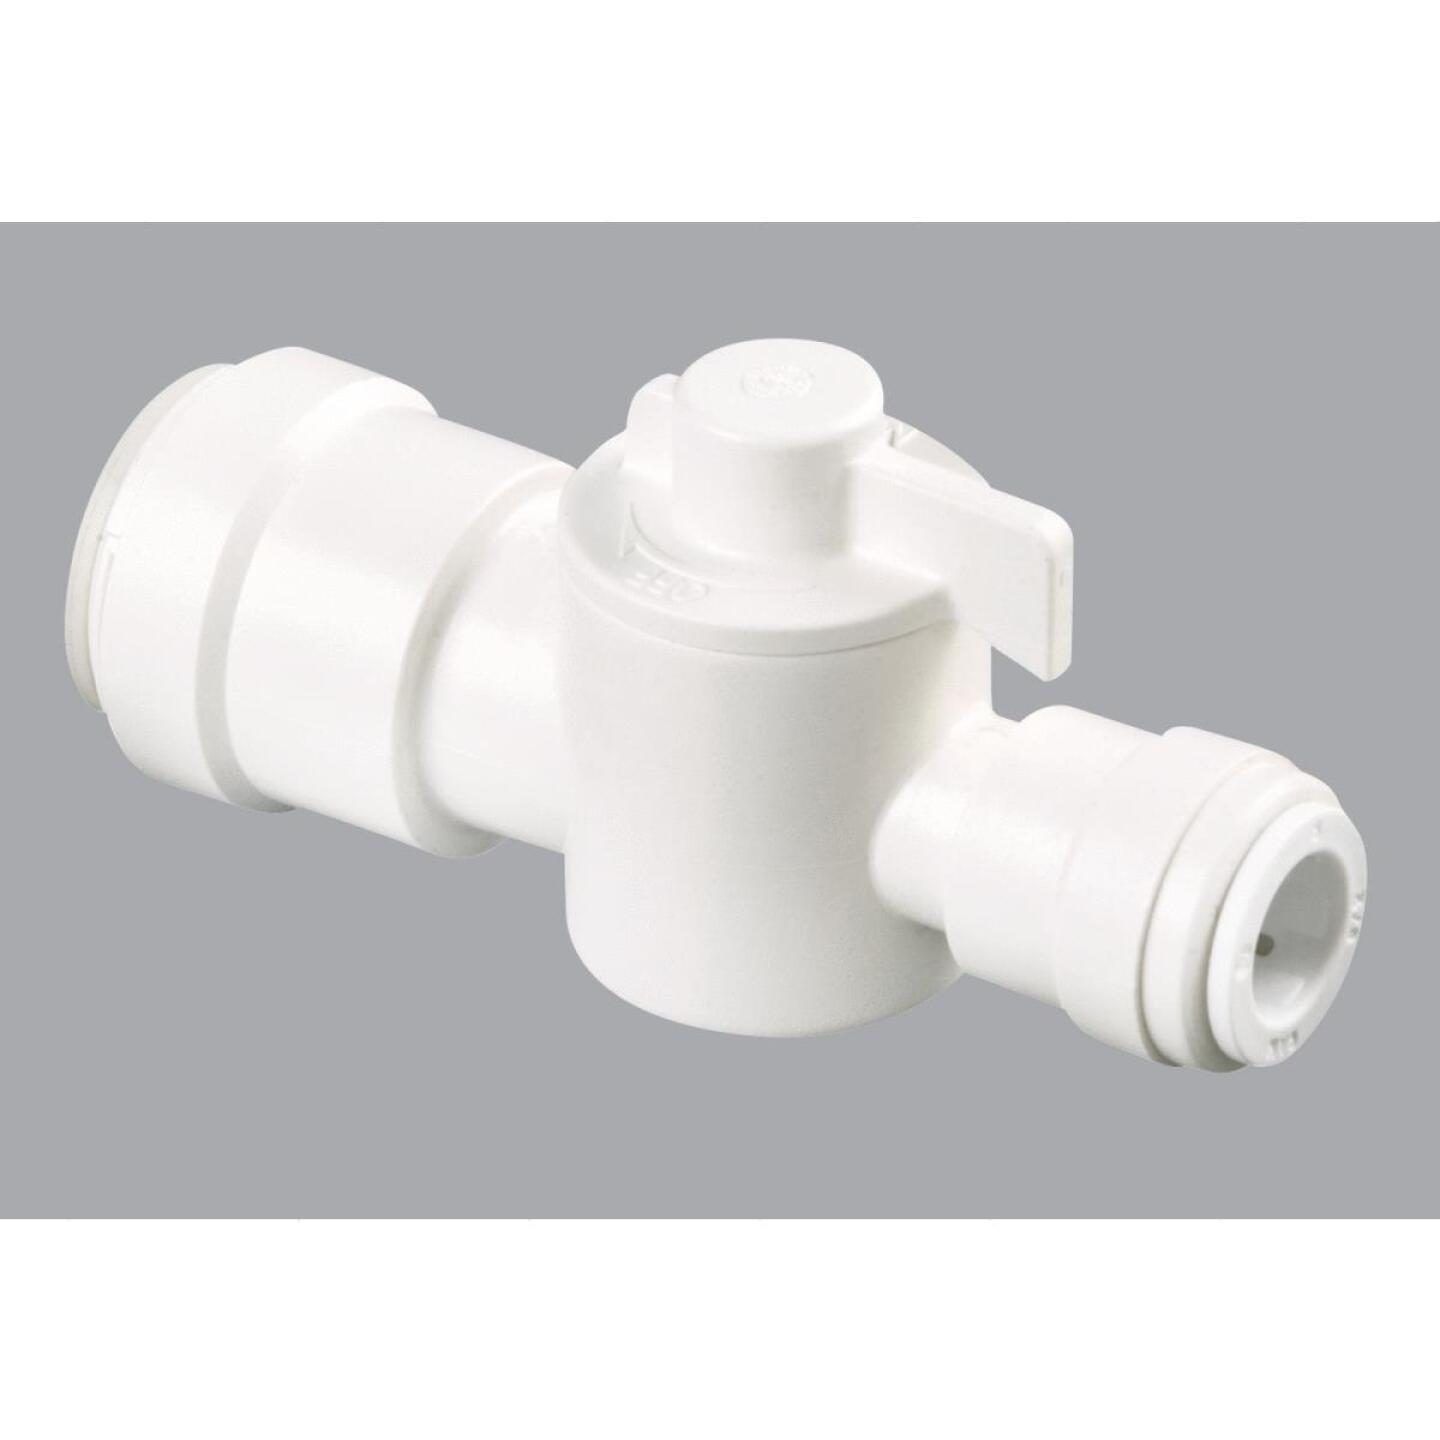 Watts 1/2 In. CTS X 3/8 In. CTS Plastic Stop Valve Image 1